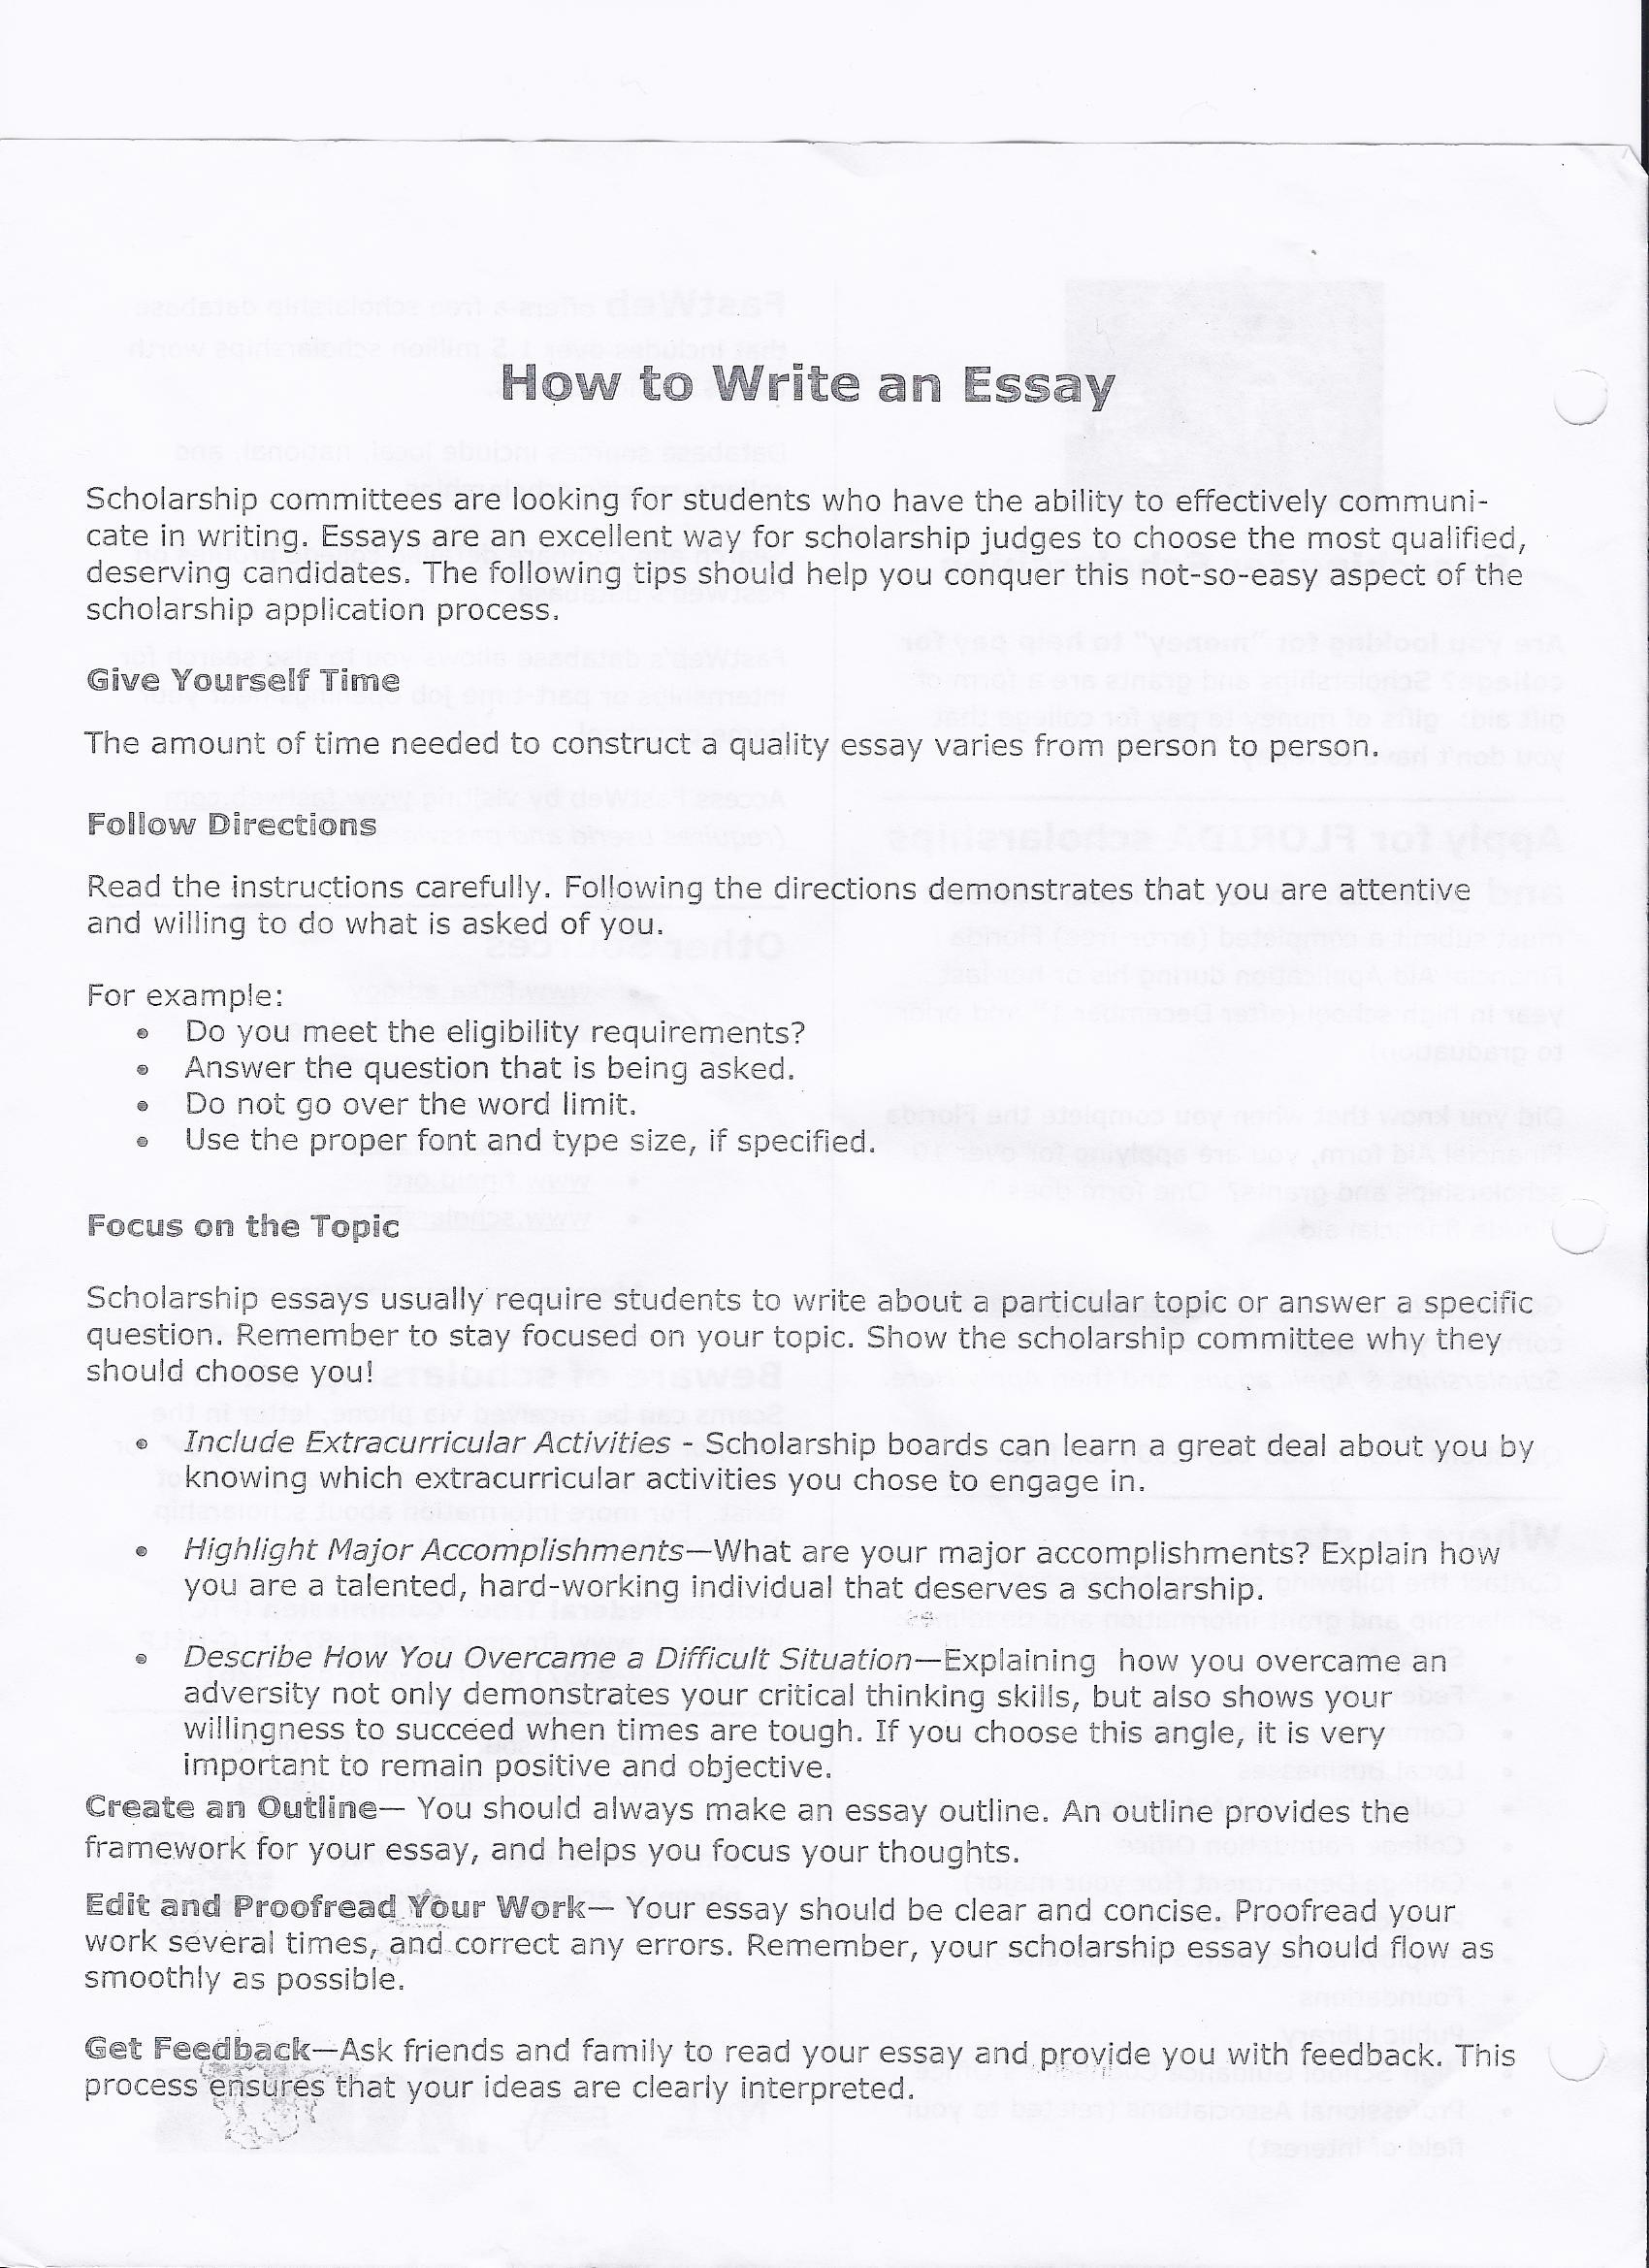 nature nurture essay collage essay collage essay collage essay  collage essay collage essay collage essay jonathon lay personal collage essaycollage essay buy key stage geography